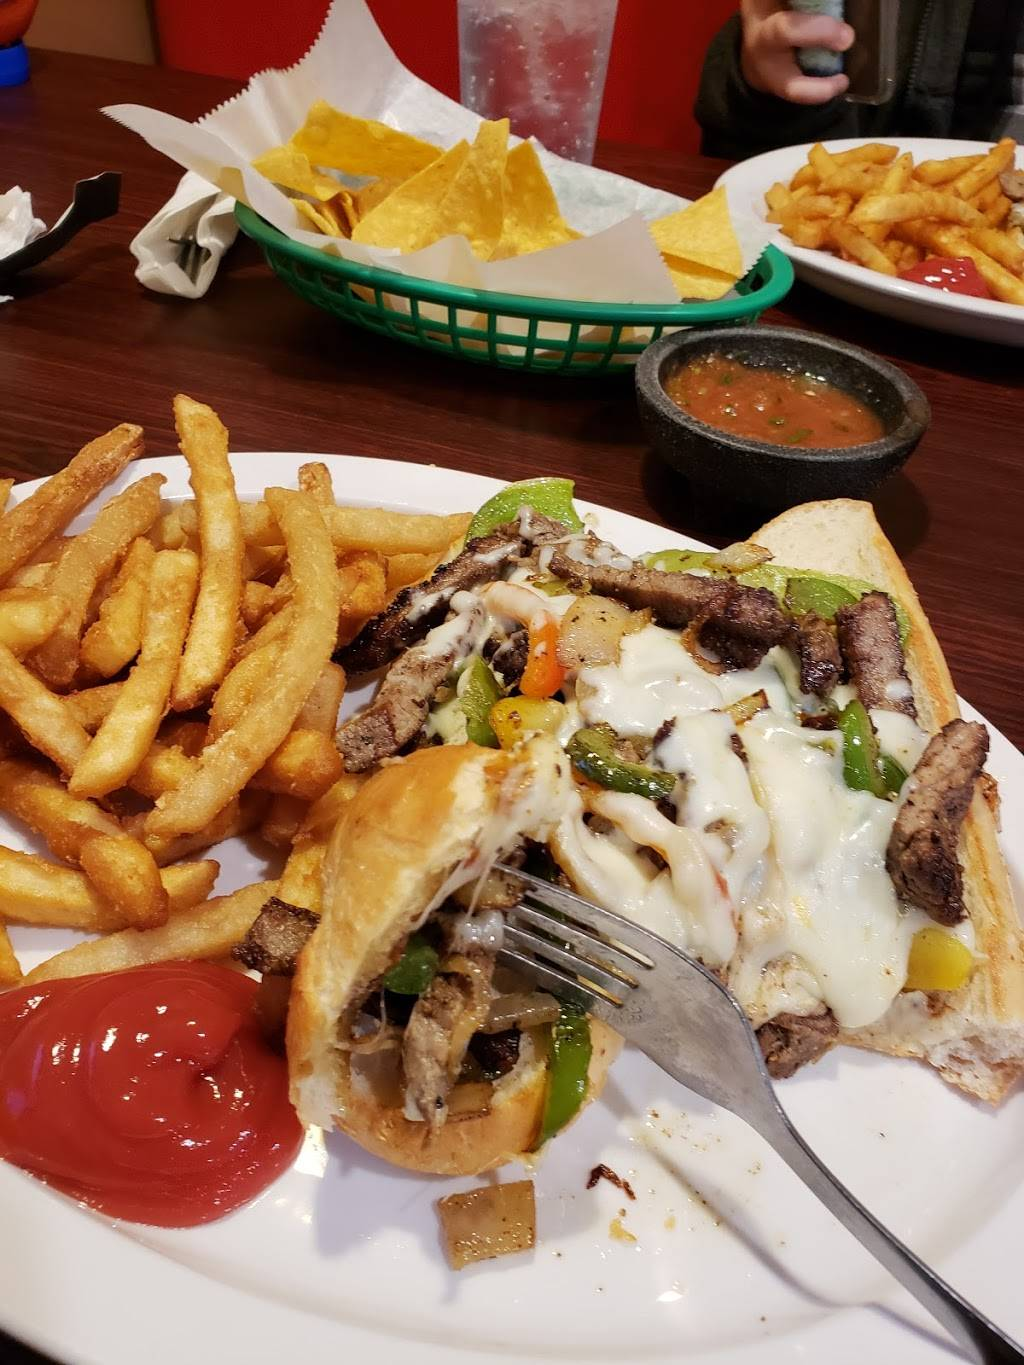 Marilus Family Restaurant Mexican & American food | restaurant | 400 S Cicott St, Logansport, IN 46947, USA | 5749928050 OR +1 574-992-8050